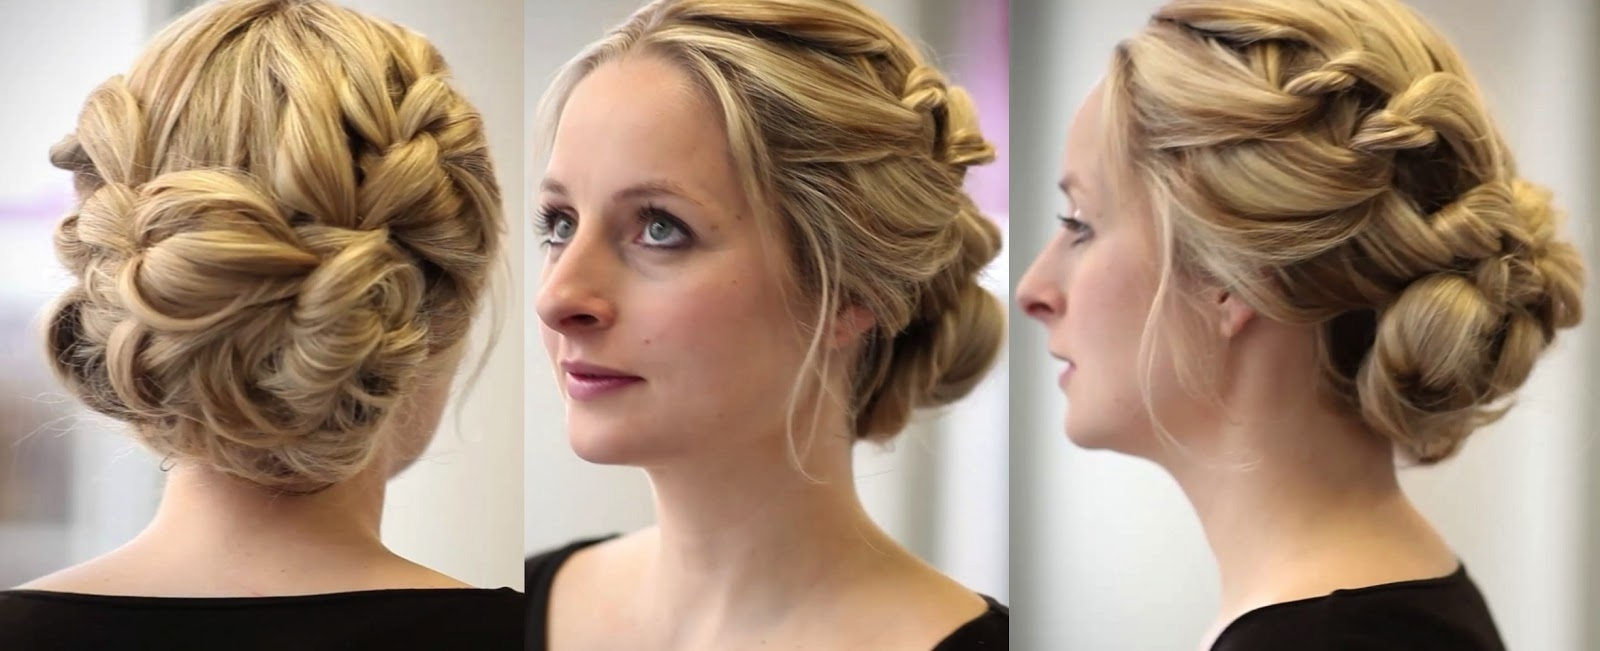 Whimsical Bridesmaid Hairstyles With Ghd – Bride De Force With Recent Wedding Hairstyles For Bride And Bridesmaids (View 14 of 15)